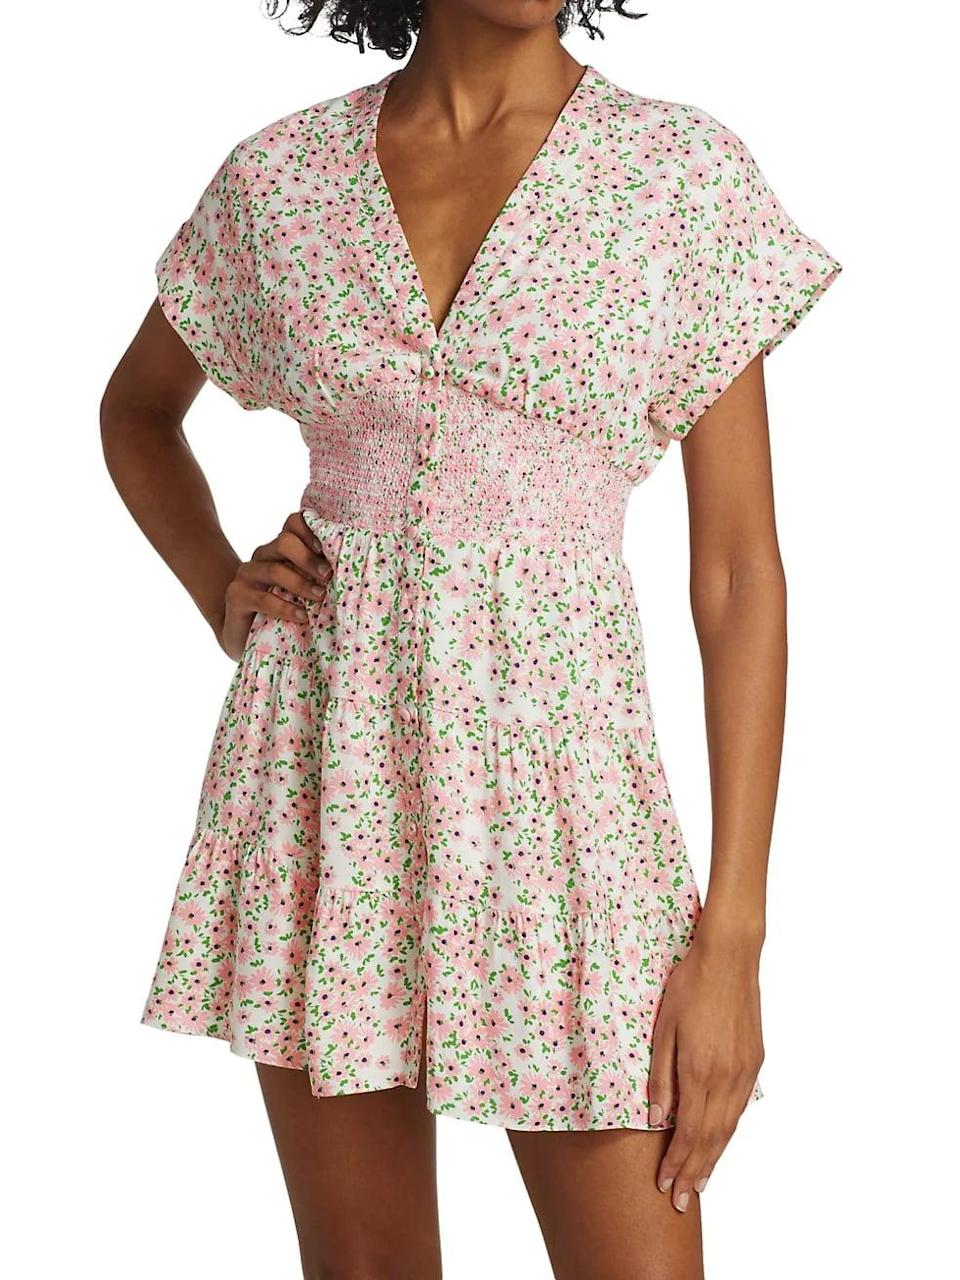 <p>This <span>Alice + Olivia Keela Floral Print Smocked Button-Front Dress</span> ($330) will make you look cute, feminine and preppy.</p>